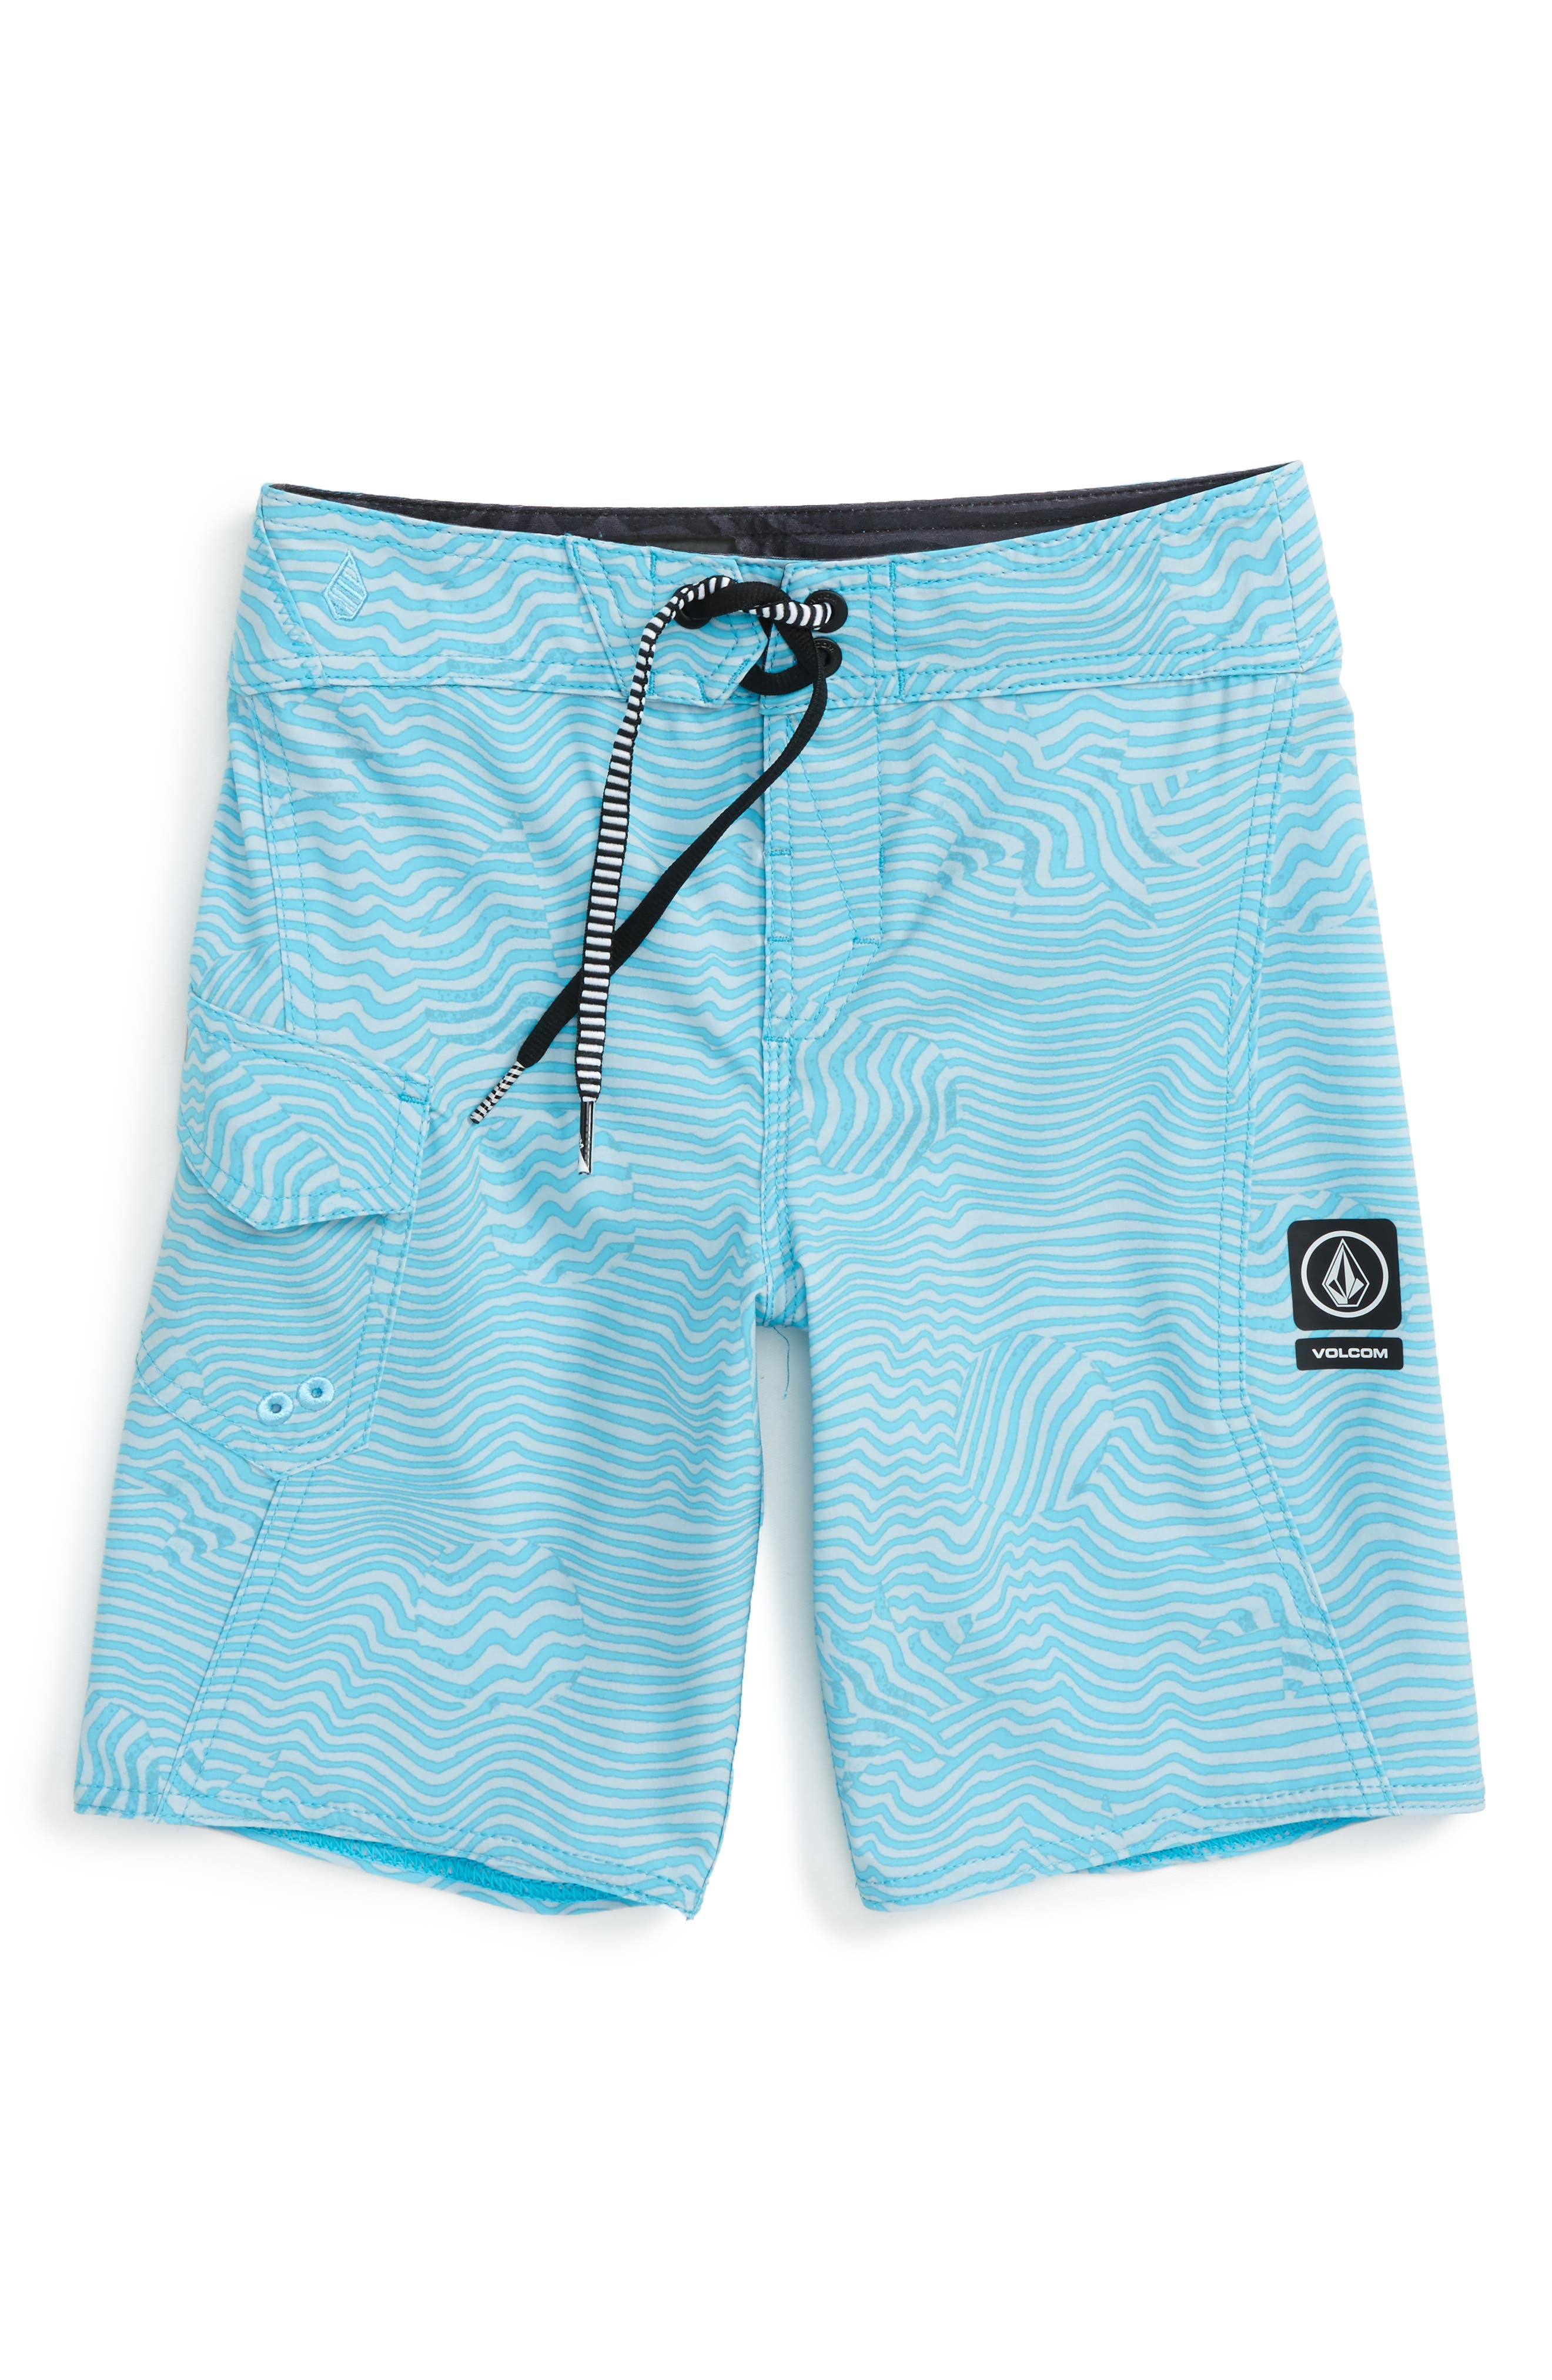 Volcom Magnetic Stone Board Shorts (Toddler Boys & Little Boys)